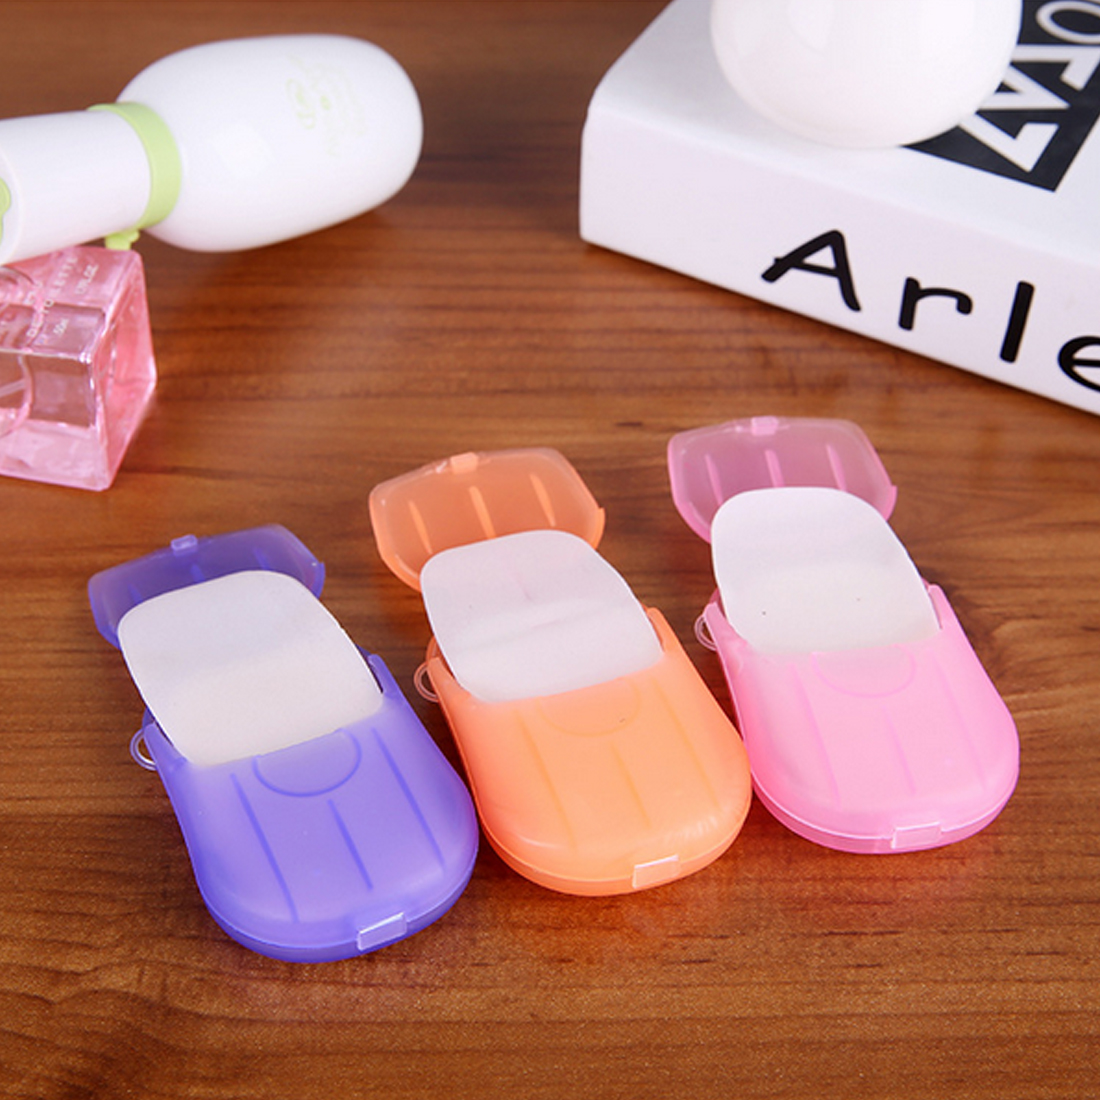 Stars Shape Convenient Washing Cleaning Hand Paper Soap Anti-bacterial Portable Soap For Travel Camping Hiking Bath & Shower